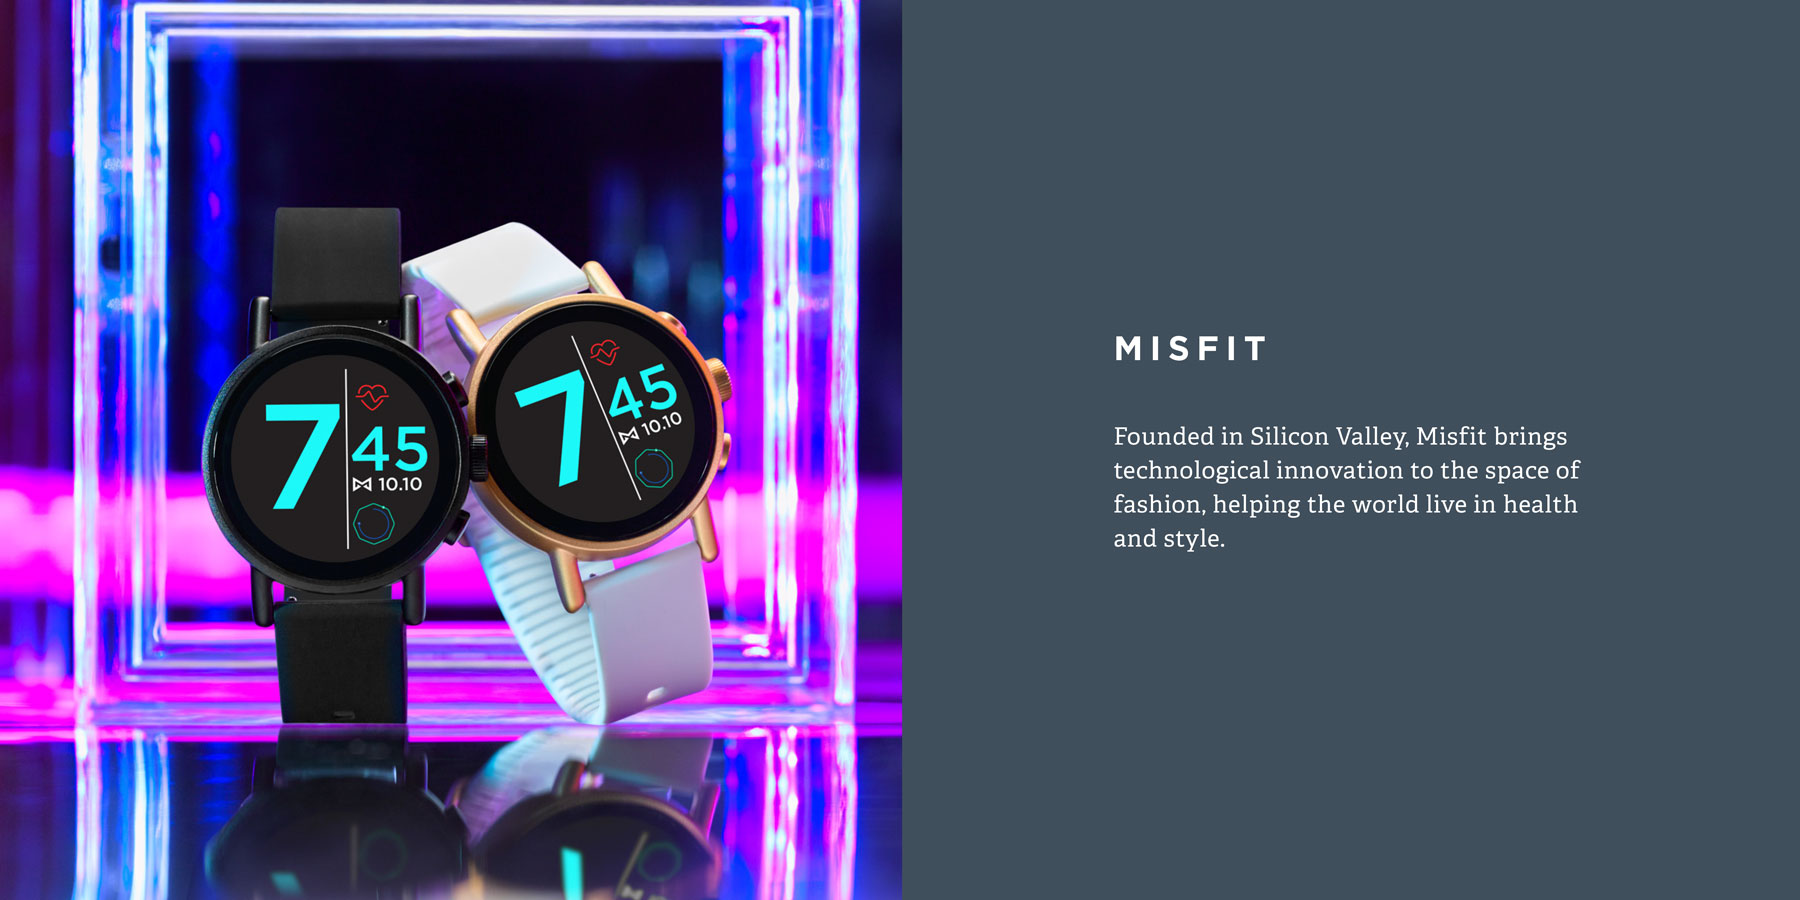 Founded in Silicon Valley, Misfit brings technological innovation to the space of fashion, helping the world live in health and style.